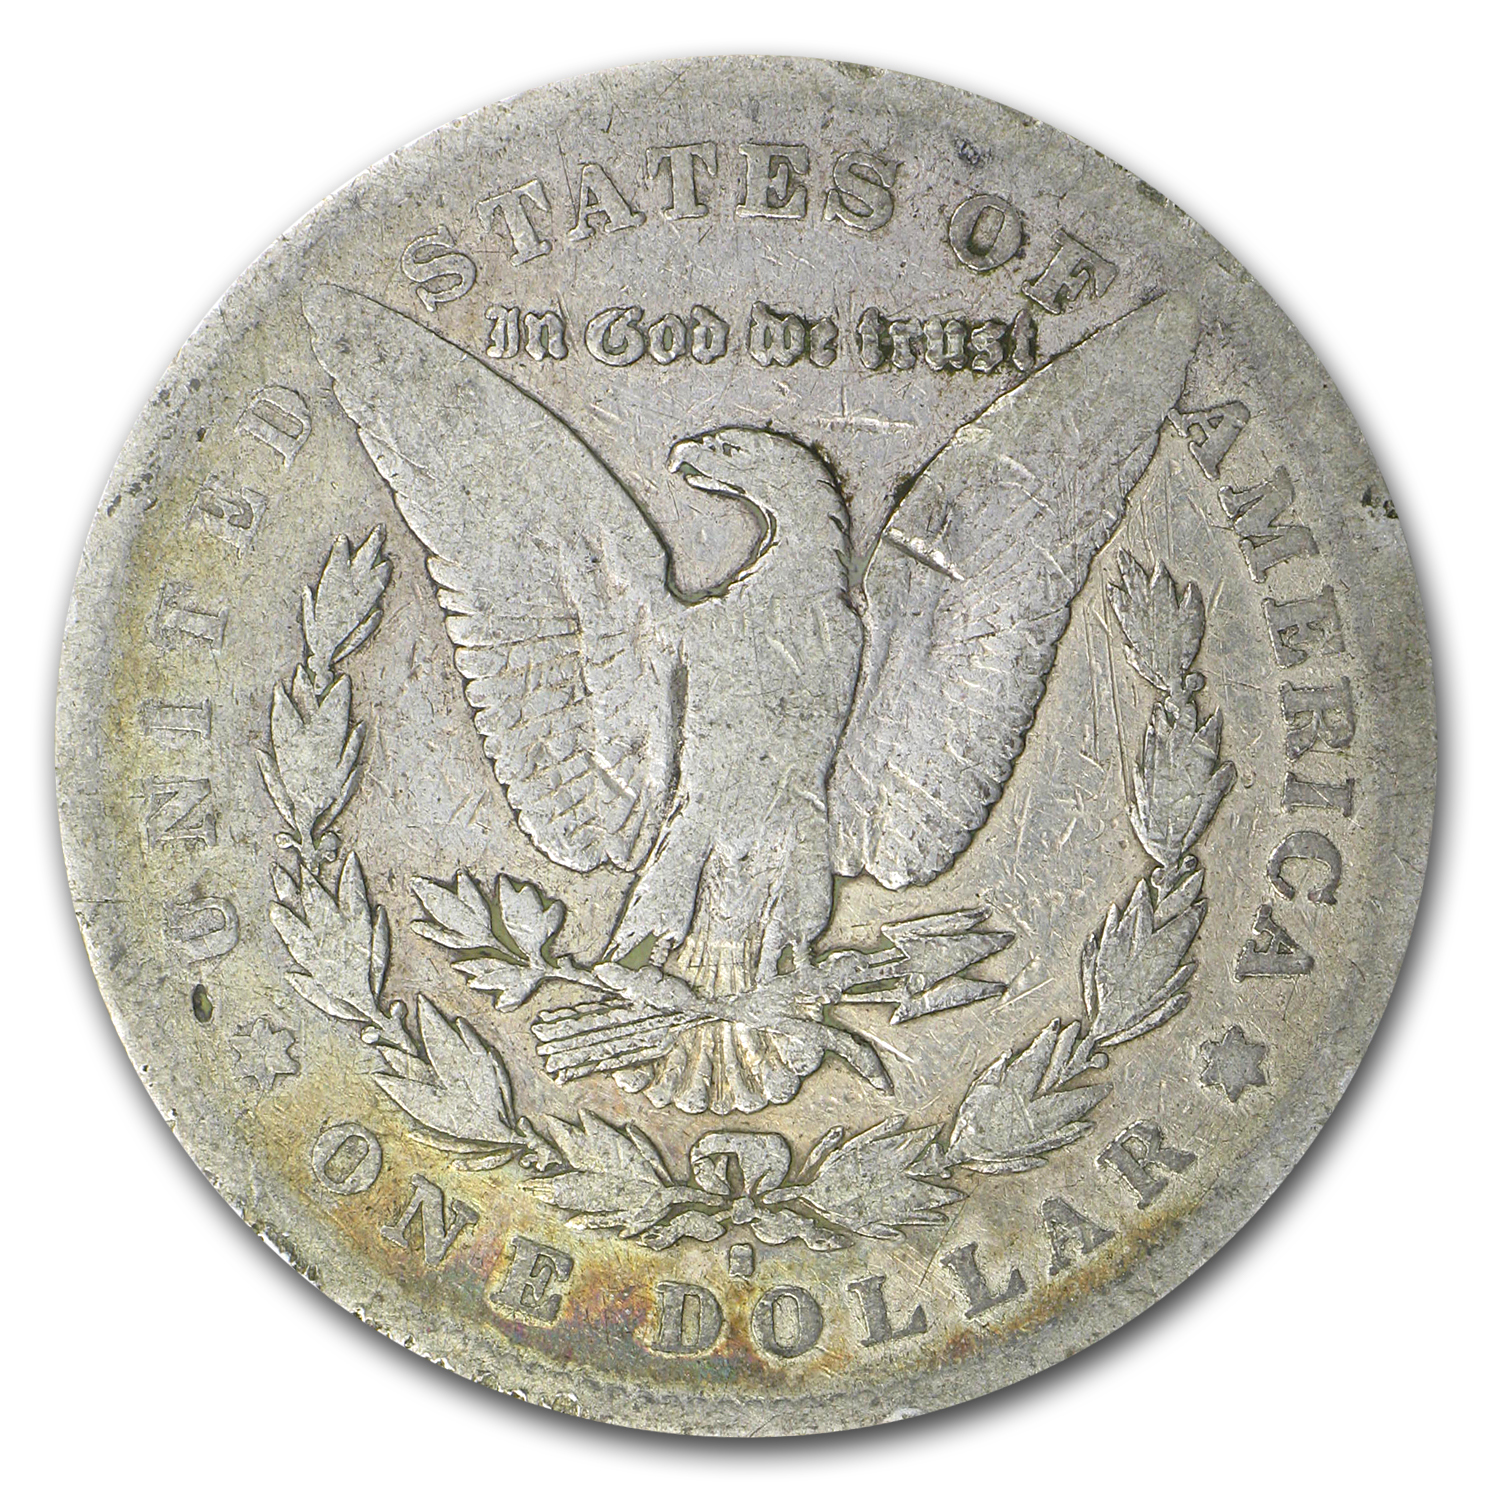 1878-S Morgan Dollar - Good VAM-26 Long Nock Top-100